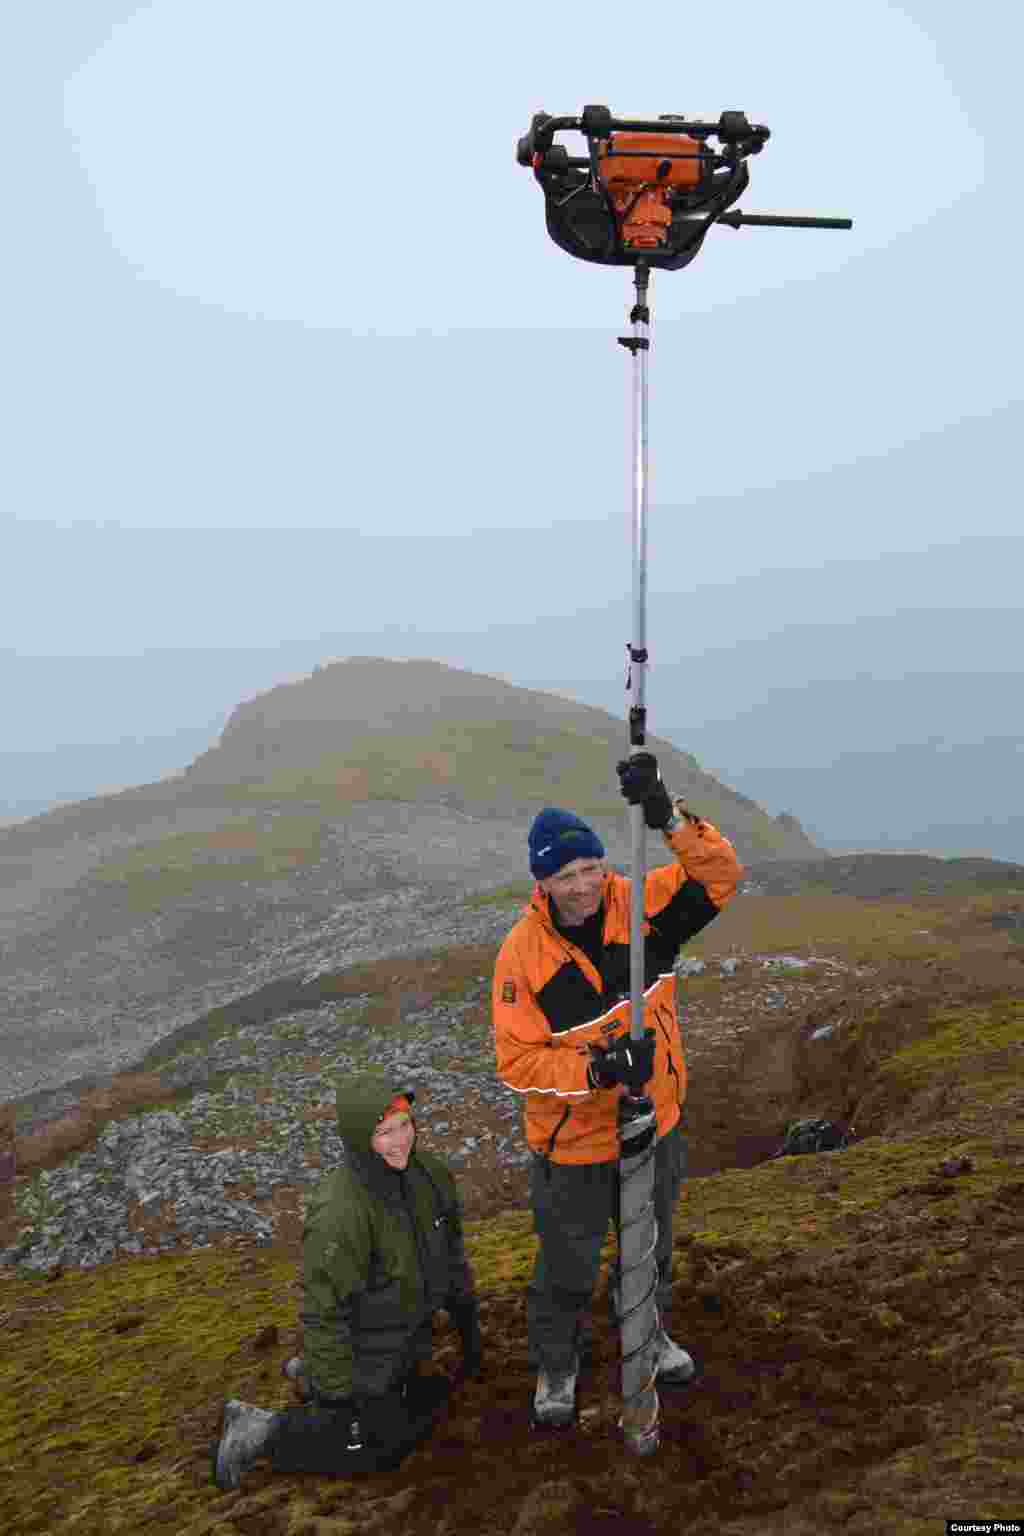 British Antarctic Survey scientists Dominic Hodson and Jessica Royles work with core sampling equipment on a high elevation moss bank on Elephant Island, South Shetland Islands. (Dan Charman/Matt Amesbury)